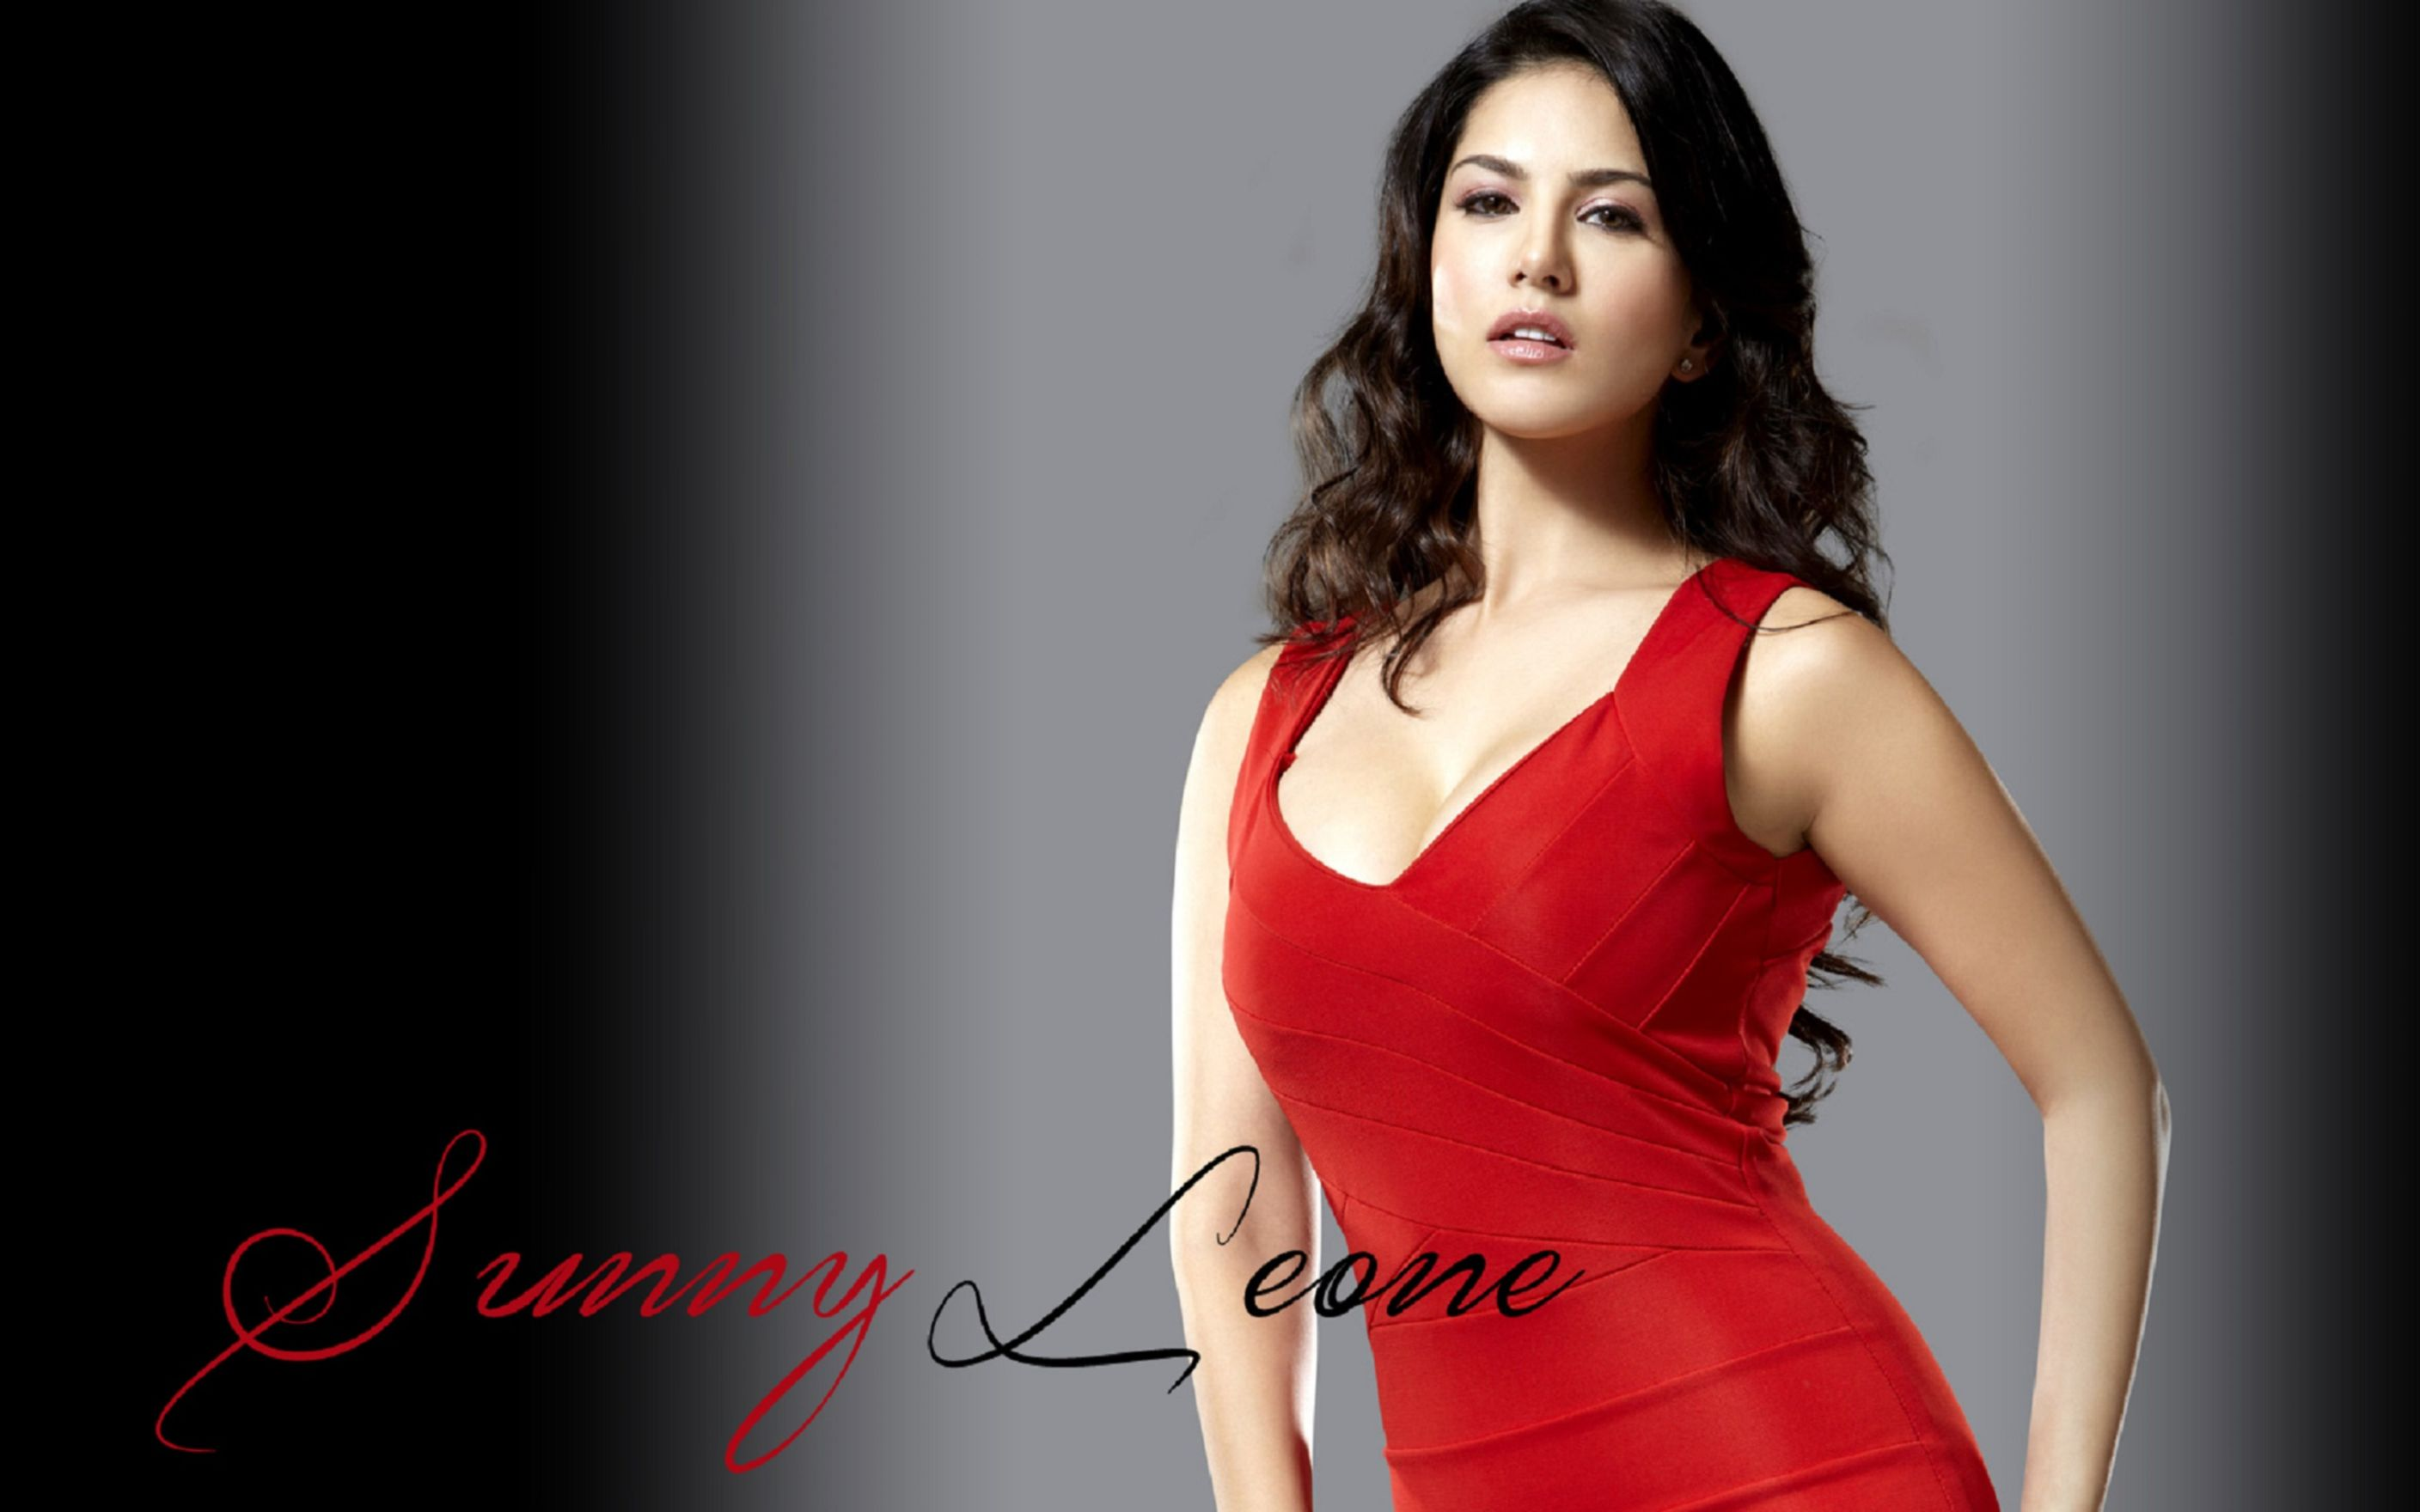 sunny leone wallpaper: desktop hd wallpaper - download free image